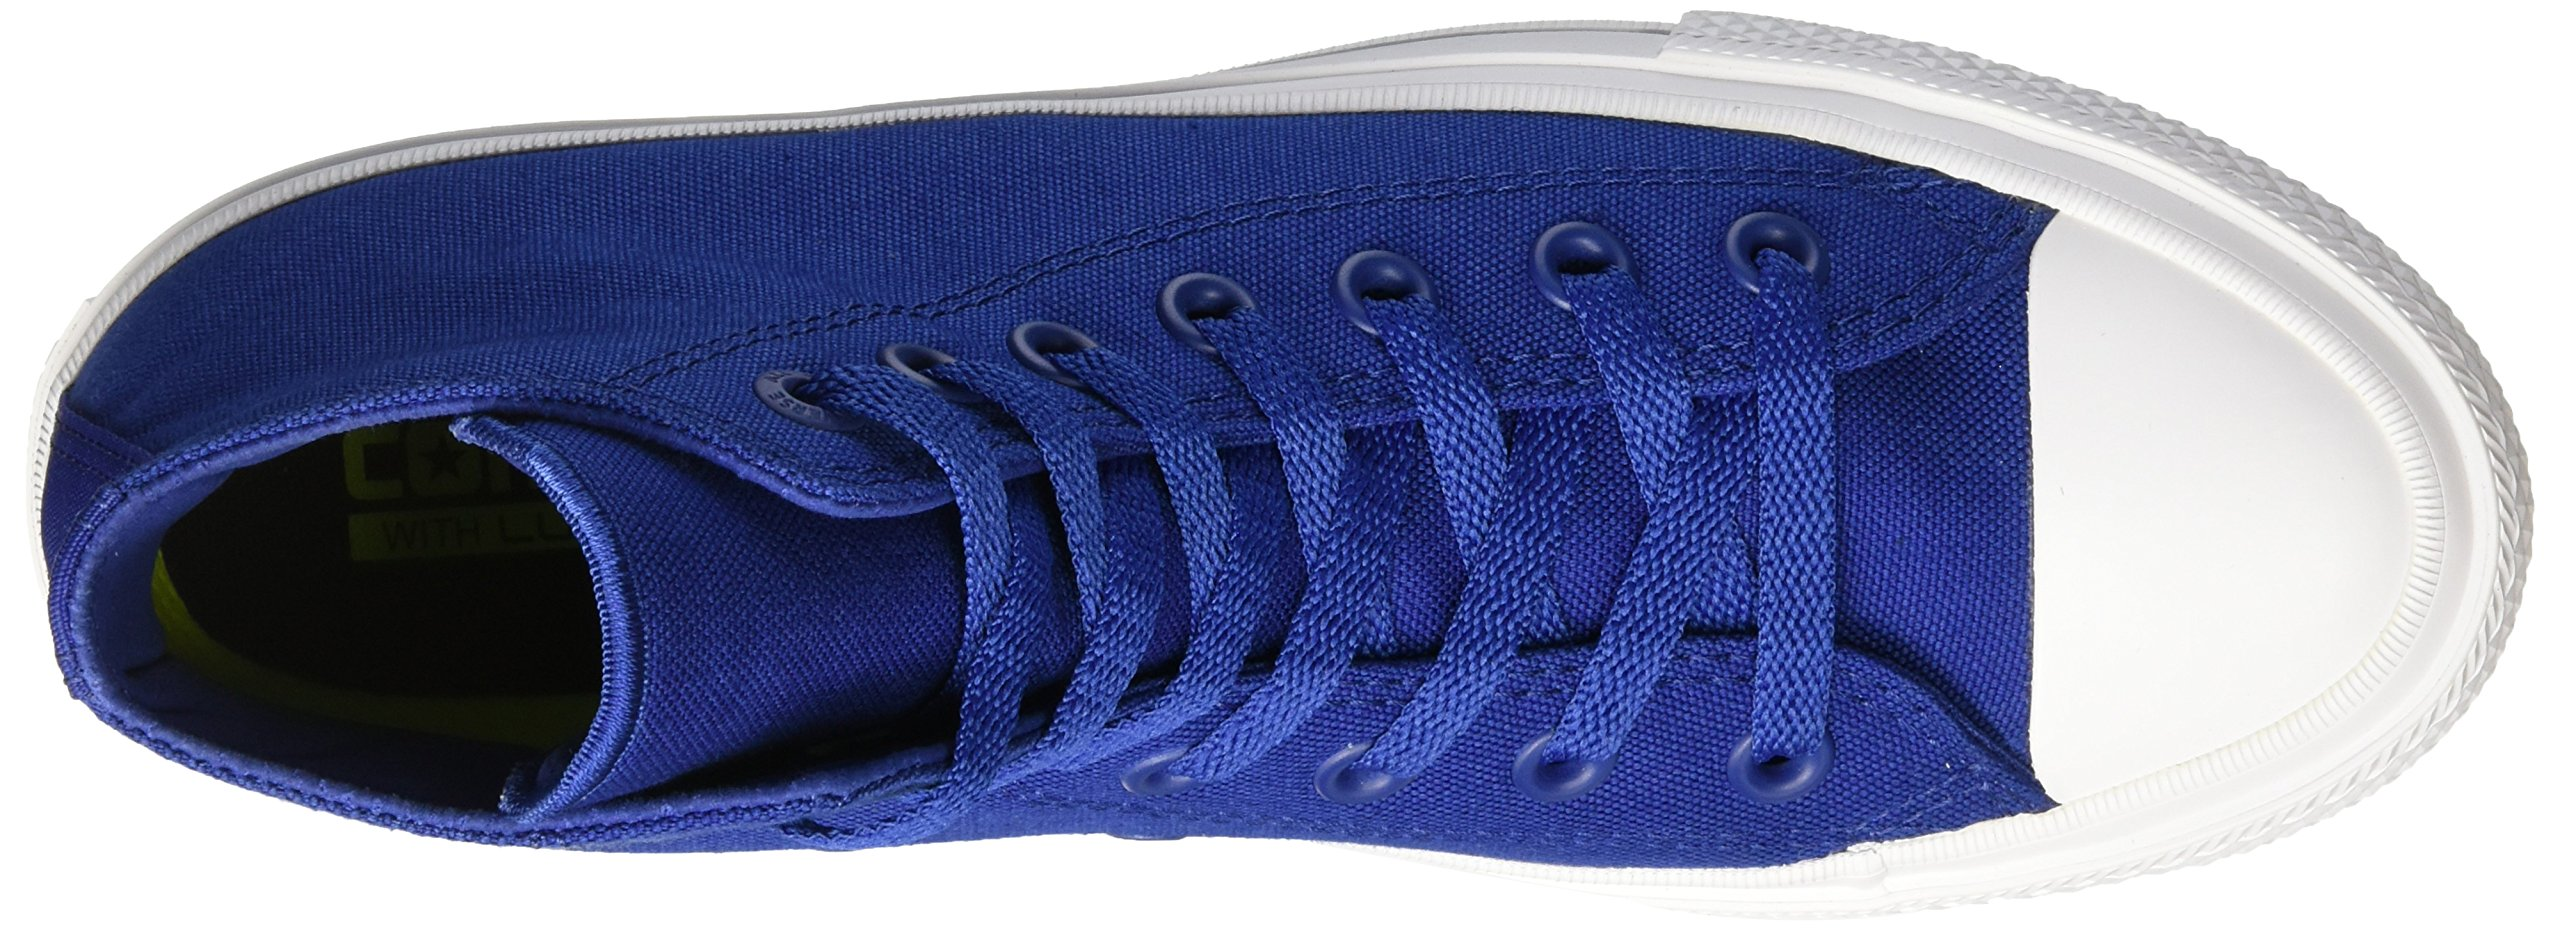 Converse Men's Chuck Taylor All Star II Hi, (Blue), 4 by Converse (Image #7)